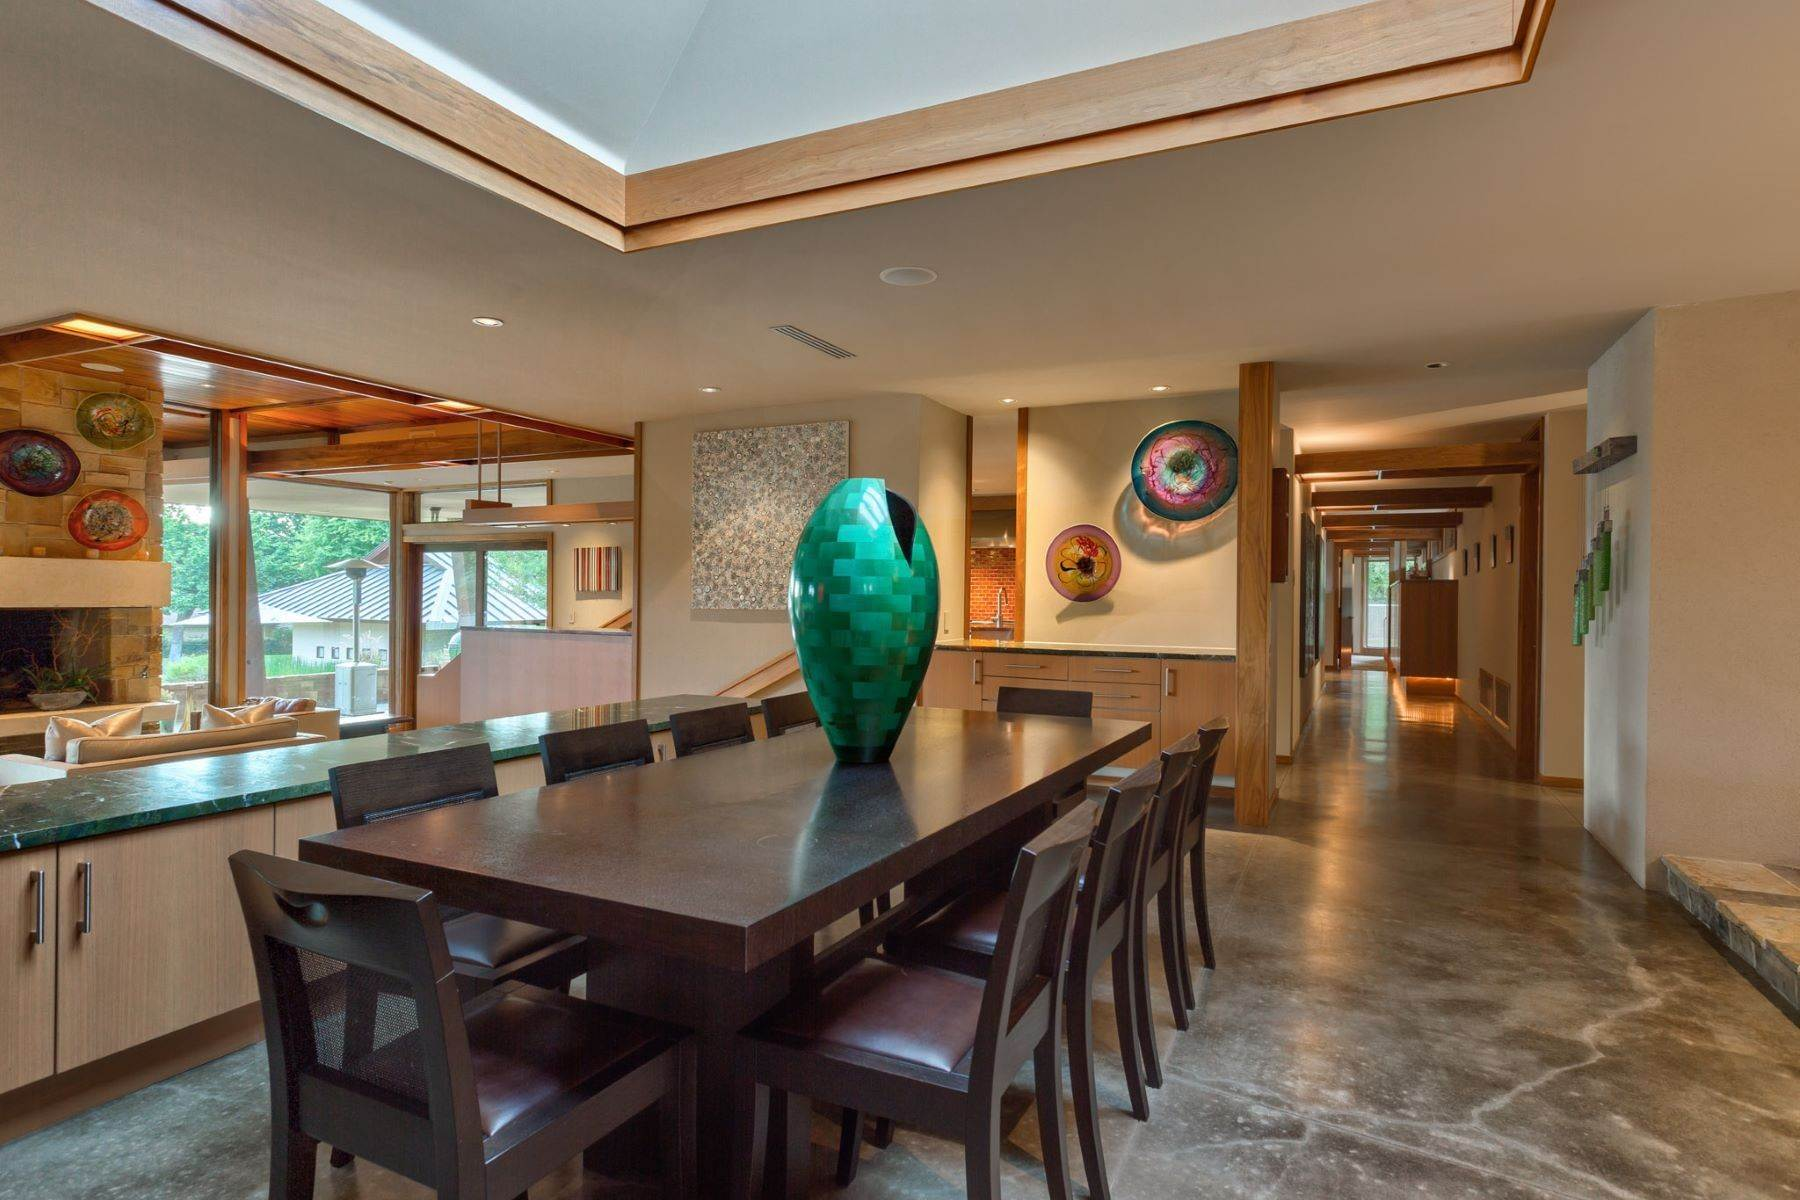 7. Single Family Homes for Sale at Sustainable Ranch Style Home with Mid-Century Flair 4808 Bill Simmons Road Colleyville, Texas 76034 United States